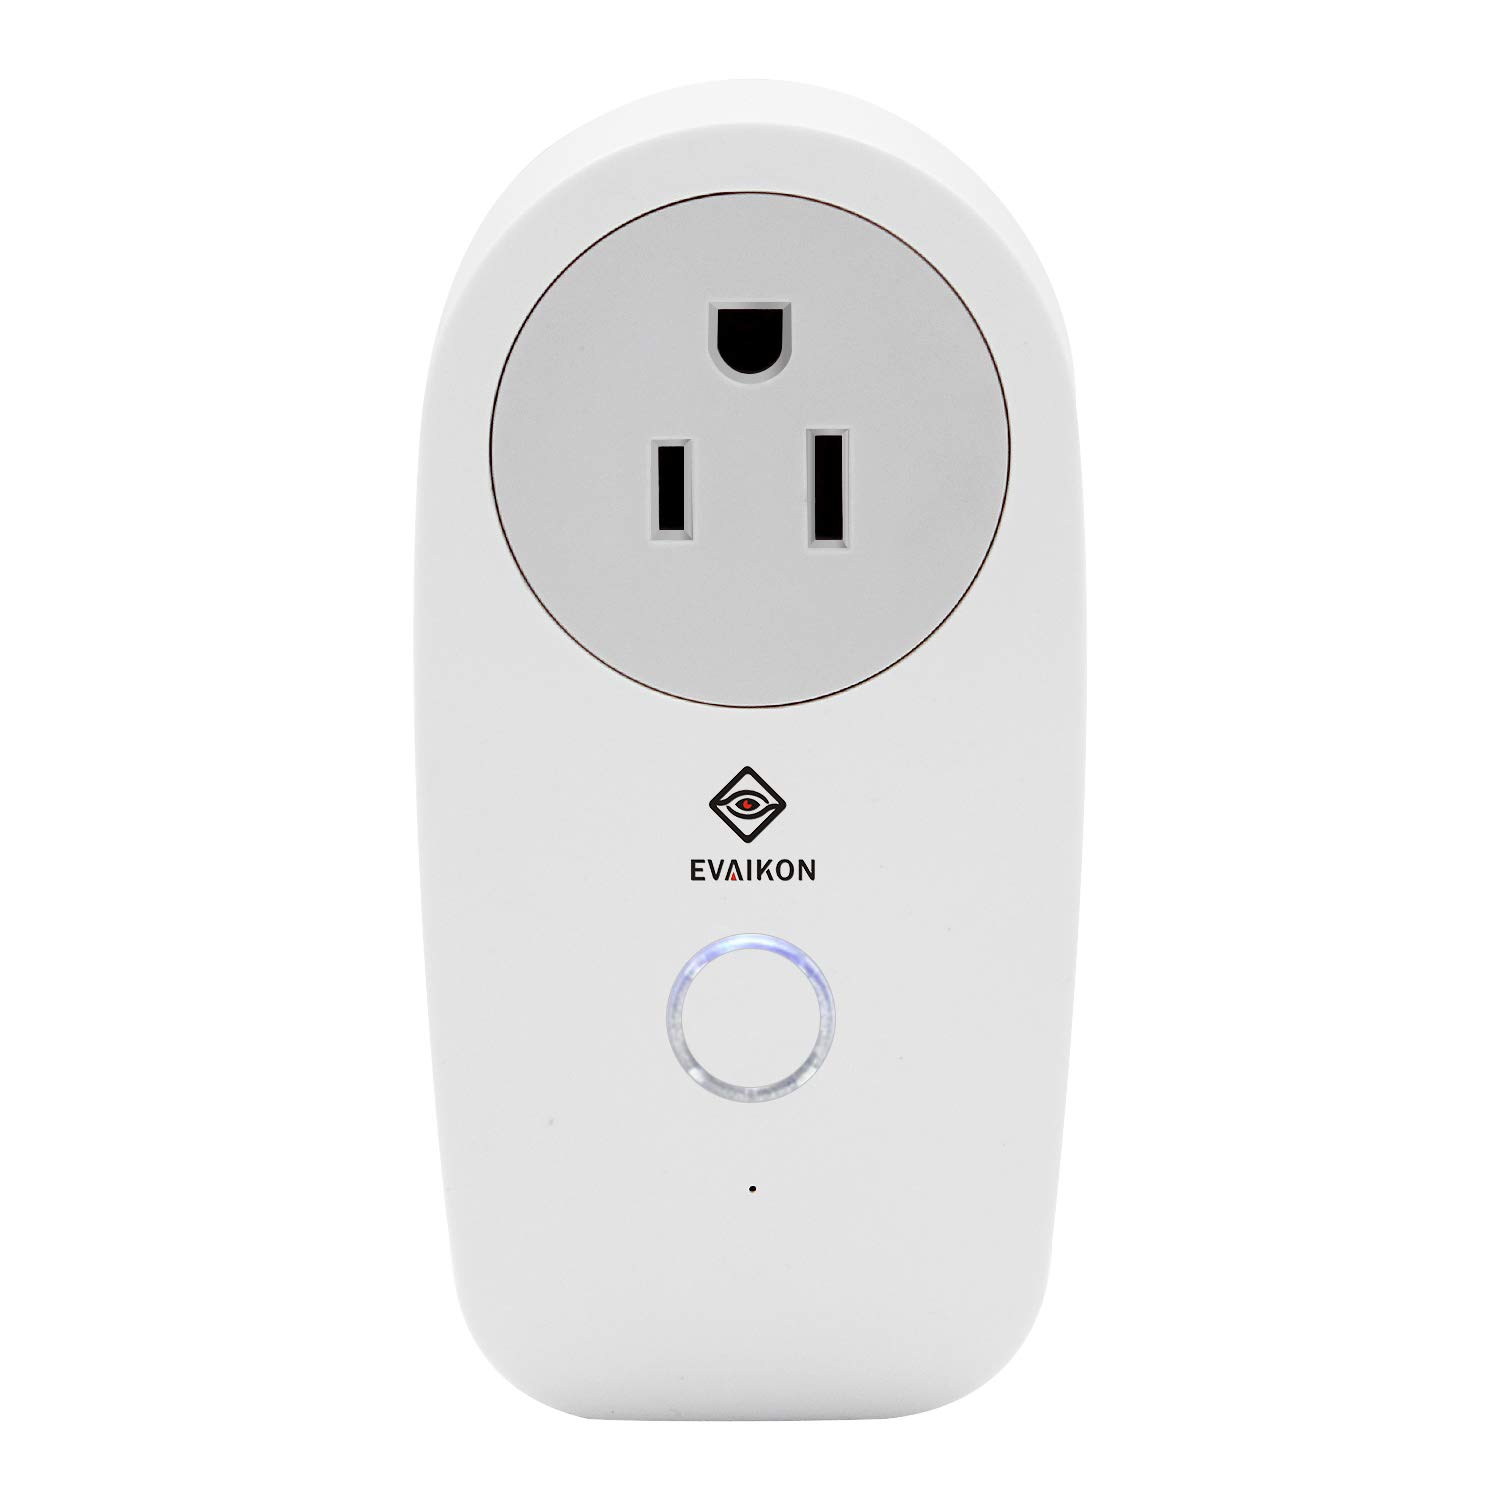 Smart Wireless WiFi Plug Socket - EVAIKON Plug Remotely Control Electrical Digital Power Timer Switch ON/OFF,Compatible with Alexa and Google home,No Hub Required,controled by Android/iOS Devices